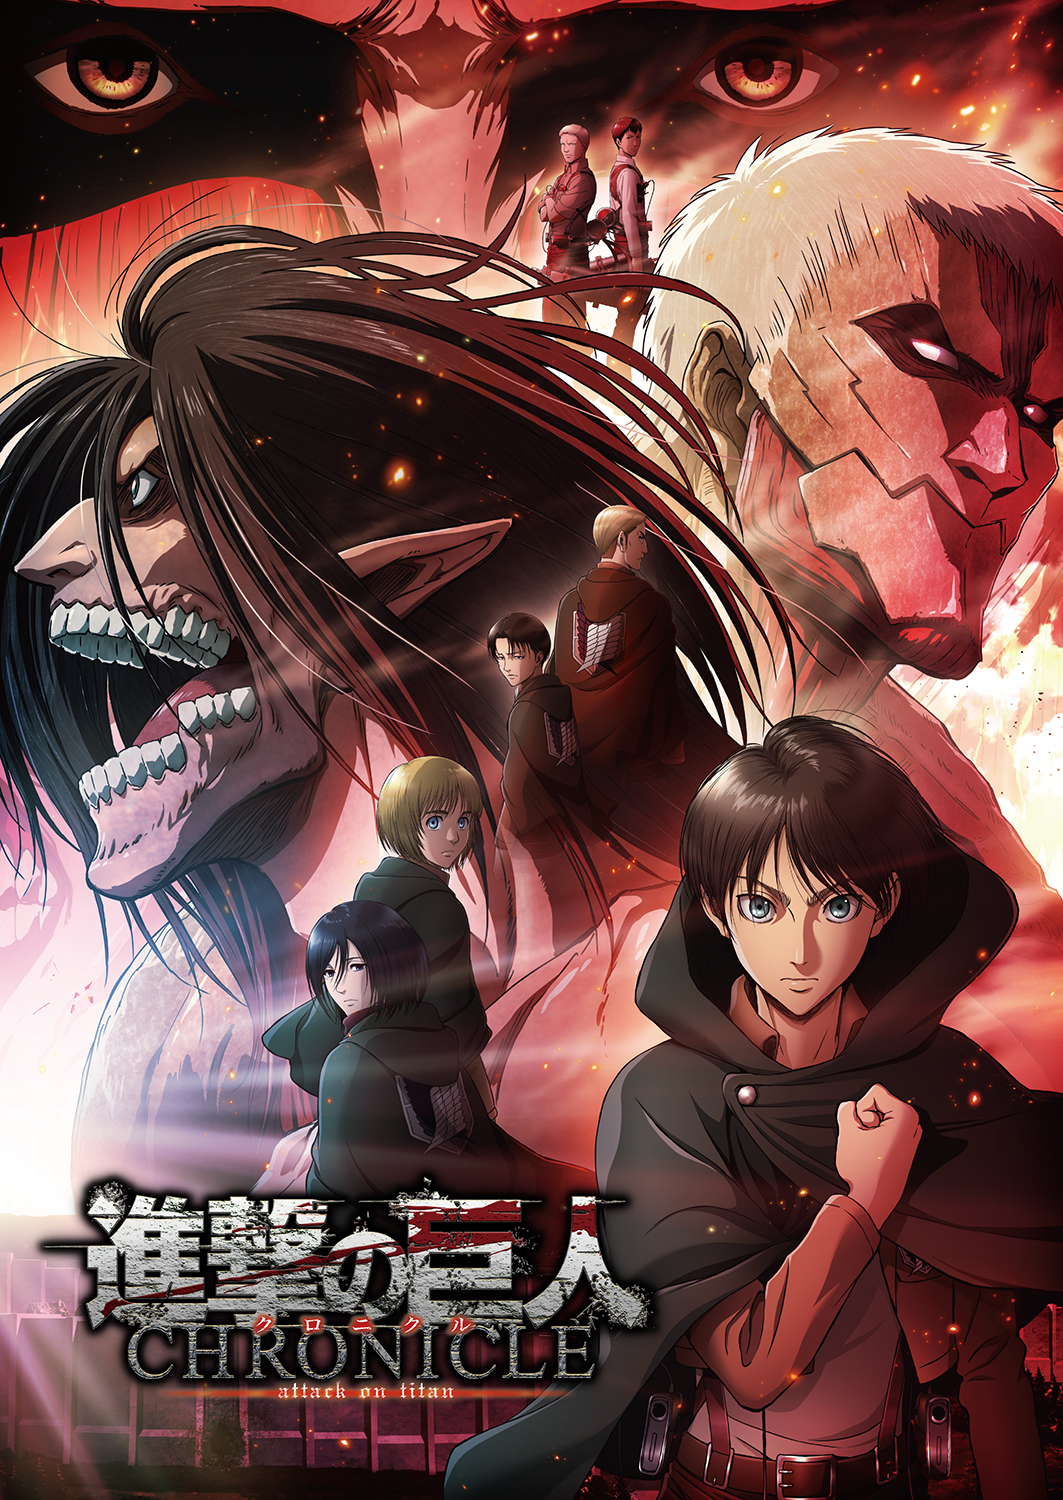 «Shingeki no Kyojin: Chronicle» se lanzará en formato Blu-ray / DVD